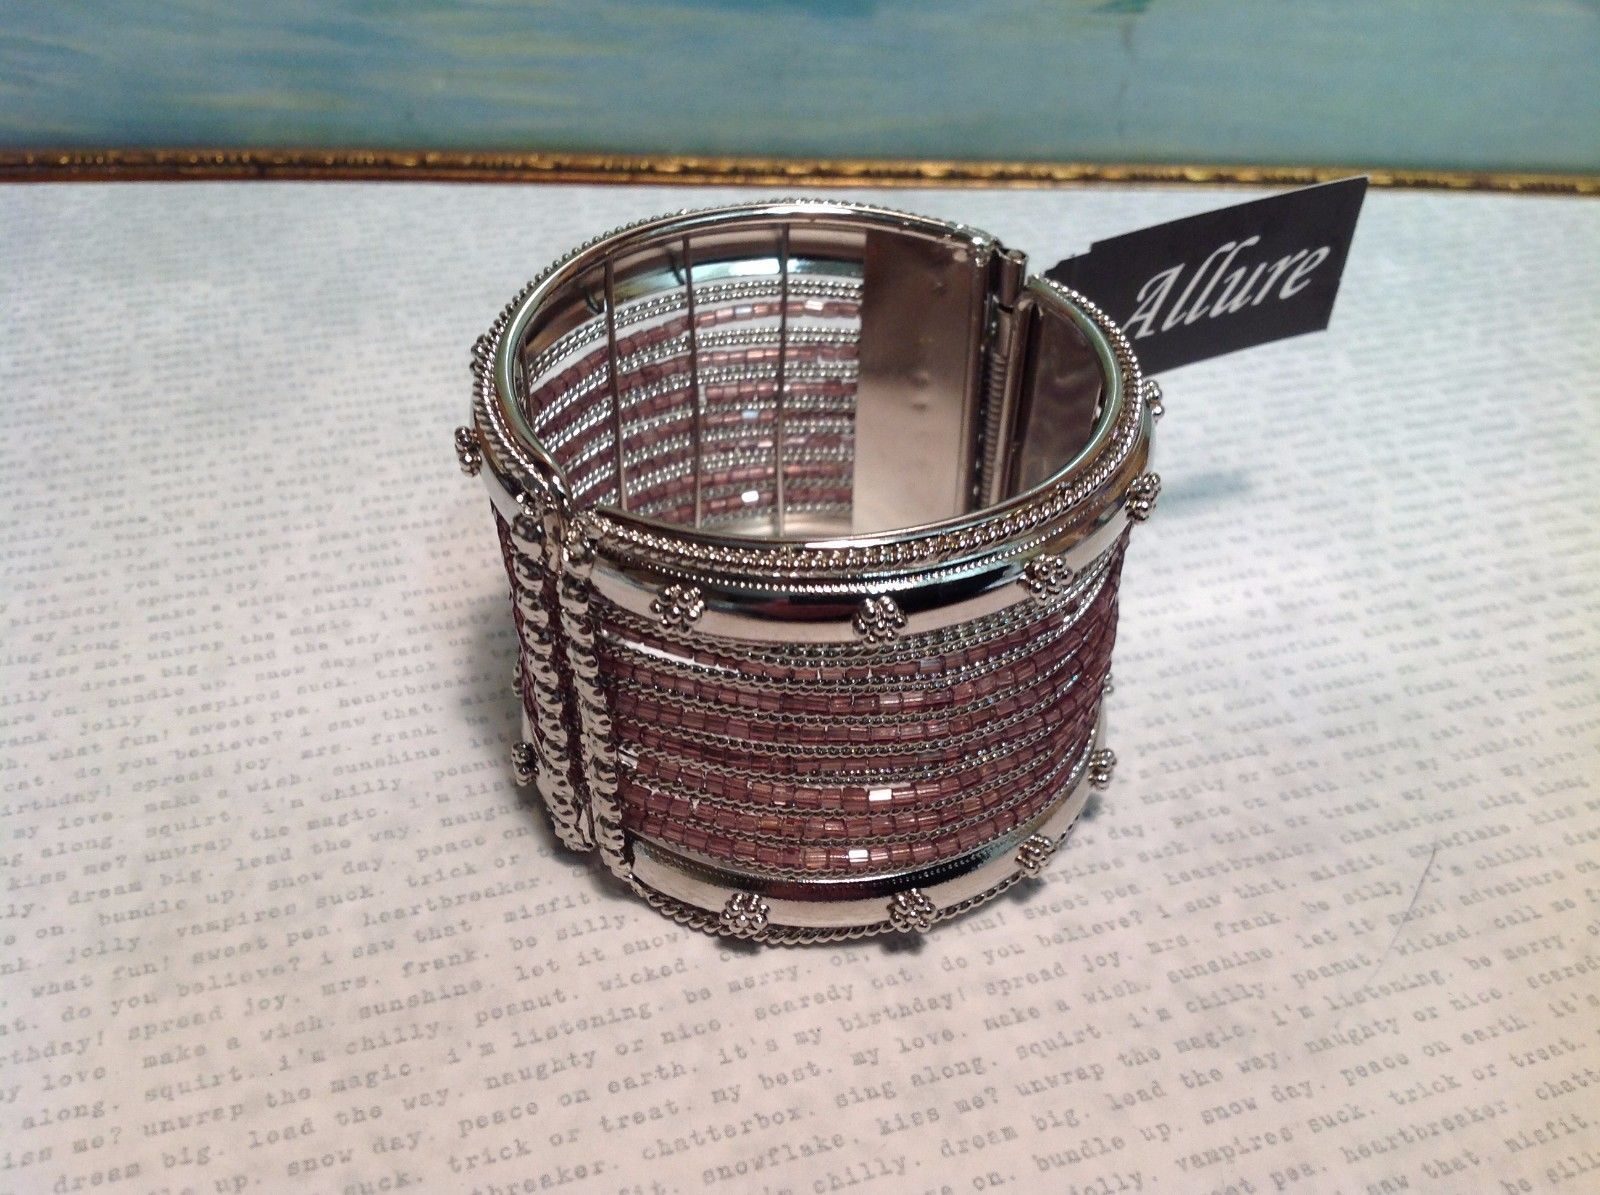 NEW Allure Wide Cuff Spring Lock Bracelet w Light Purple Beads